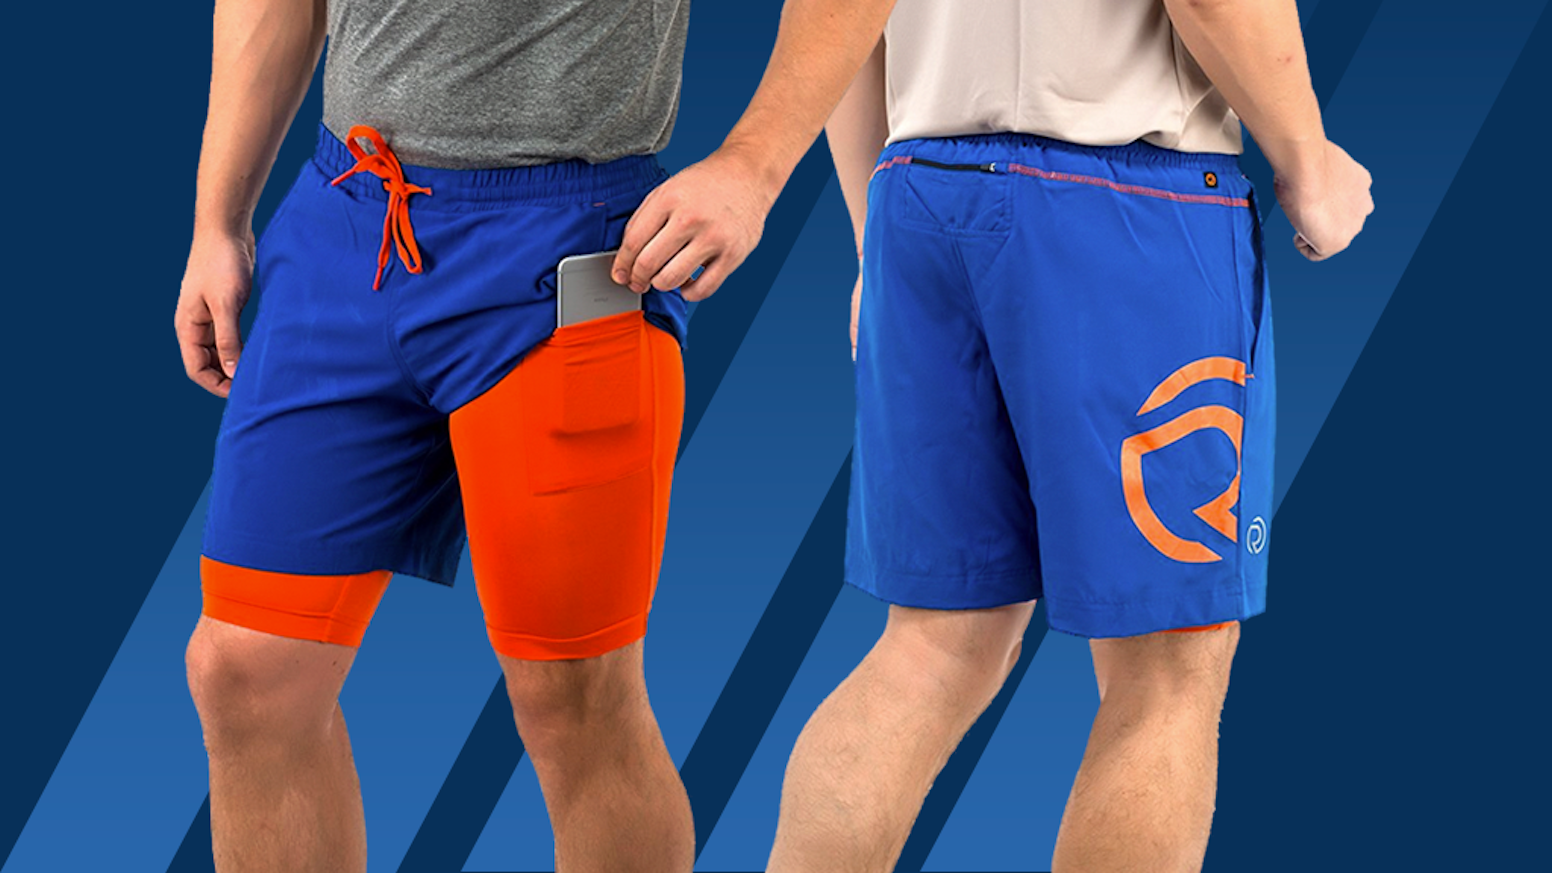 Innovative Shorts, Tights & Track Pants with Smartphone Pocket System. No more bouncing or falling phones! Buy on www.truerevo.com!